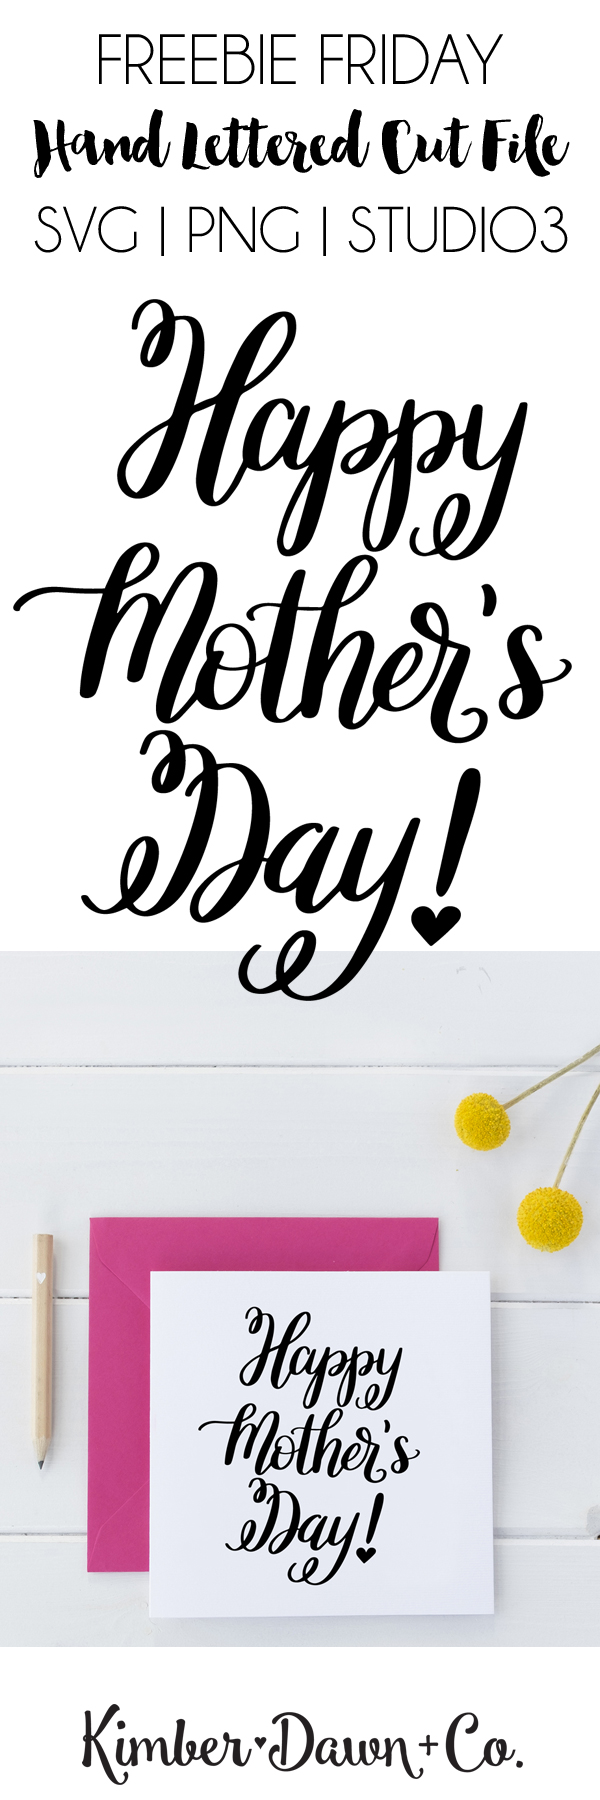 Freebie Friday! Hand Lettered Happy Mother's Day Free SVG Cut File | KimberDawnCo.com